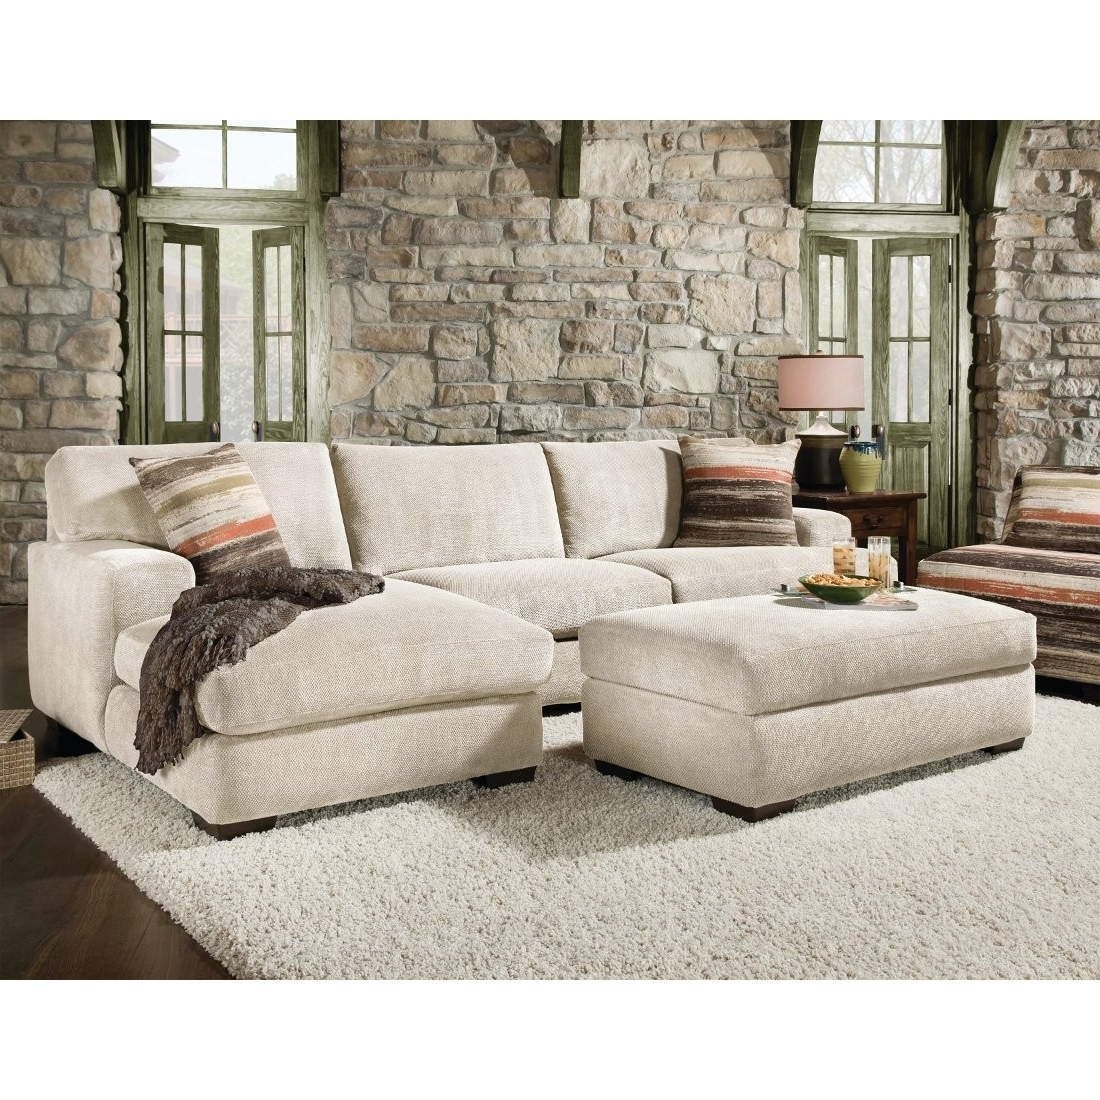 Conn's Throughout Sectional Sofas With Chaise Lounge (View 13 of 15)